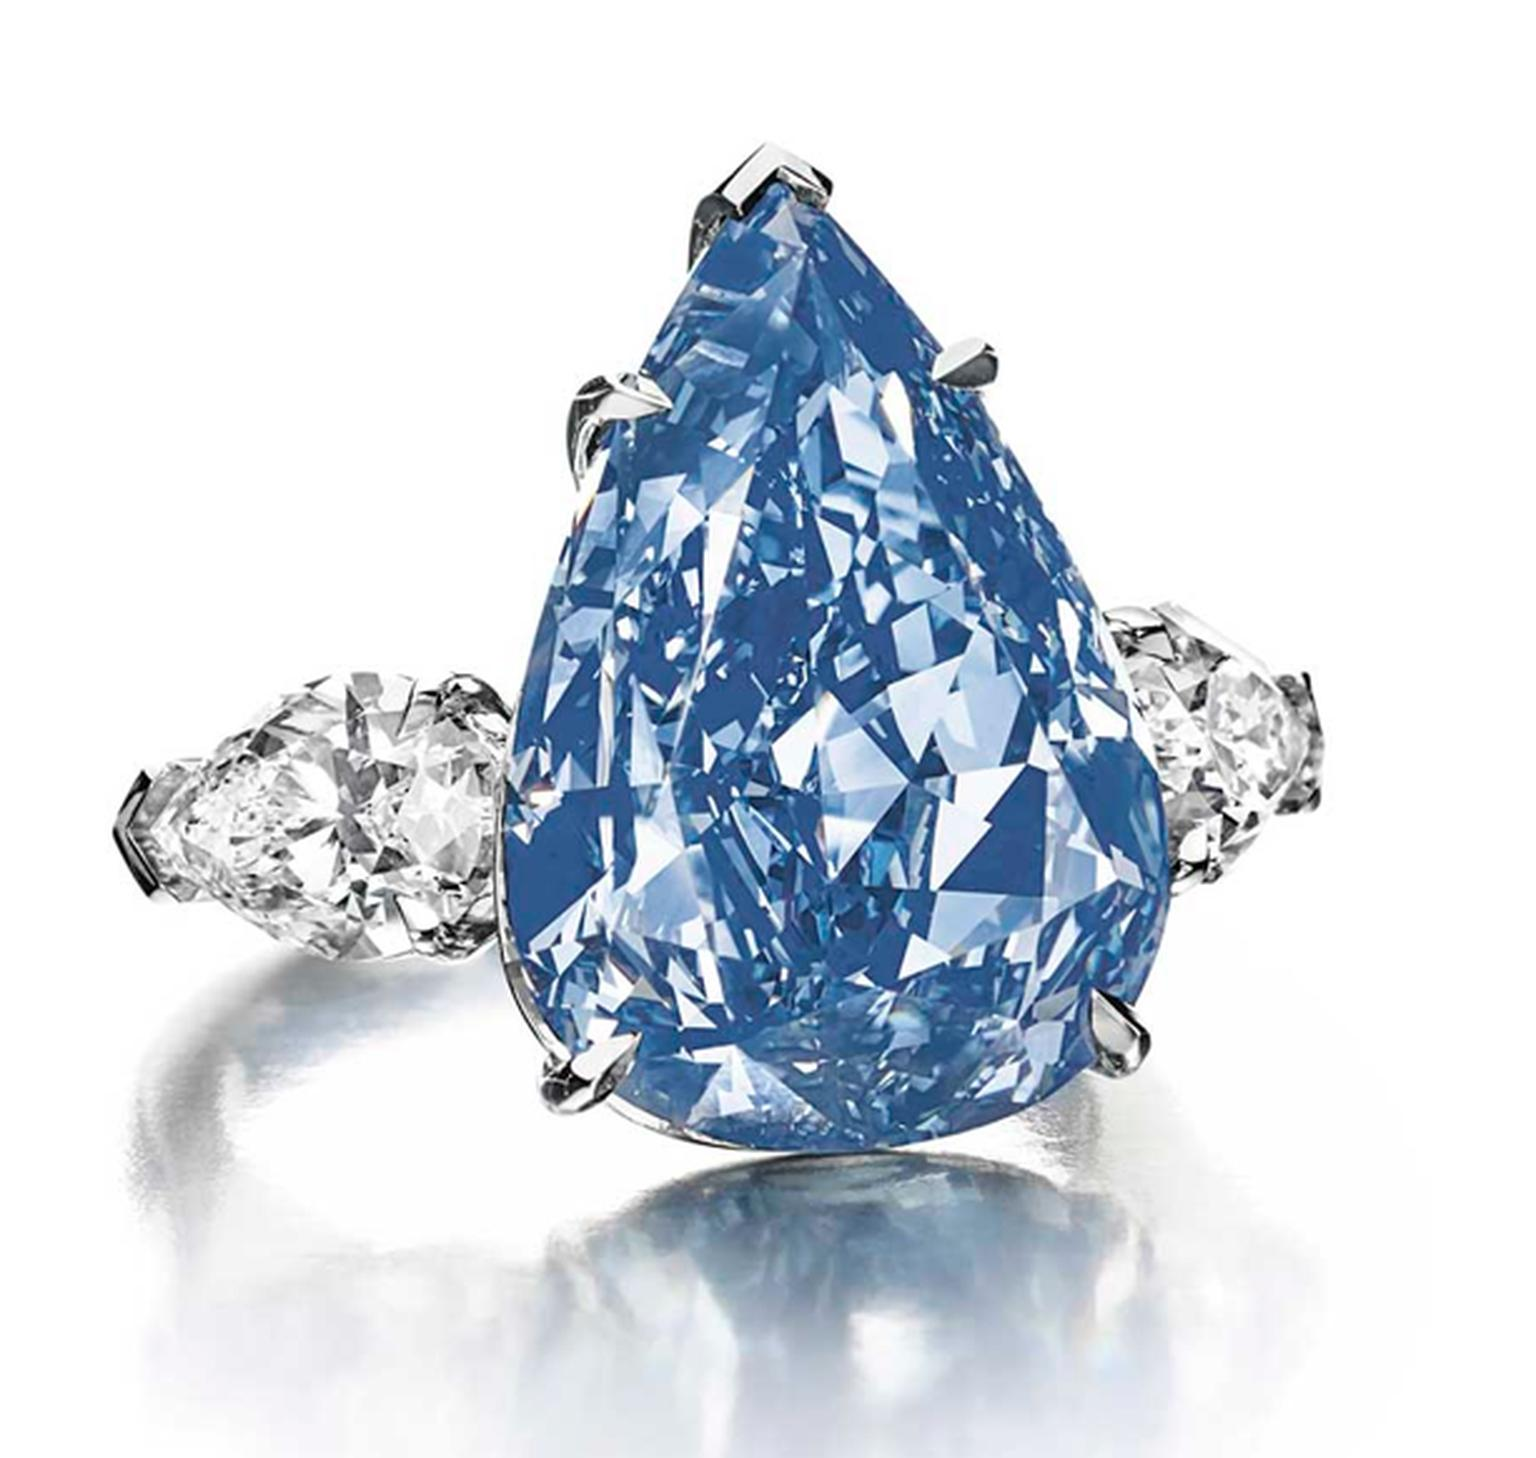 "Harry Winston's ""The Blue"" diamond, a 13.22ct Fancy vivid blue pear-shaped diamond, is the largest flawless Fancy vivid blue diamond in the world. It was renamed ""The Winston Blue"" by its owner, Harry Winston."